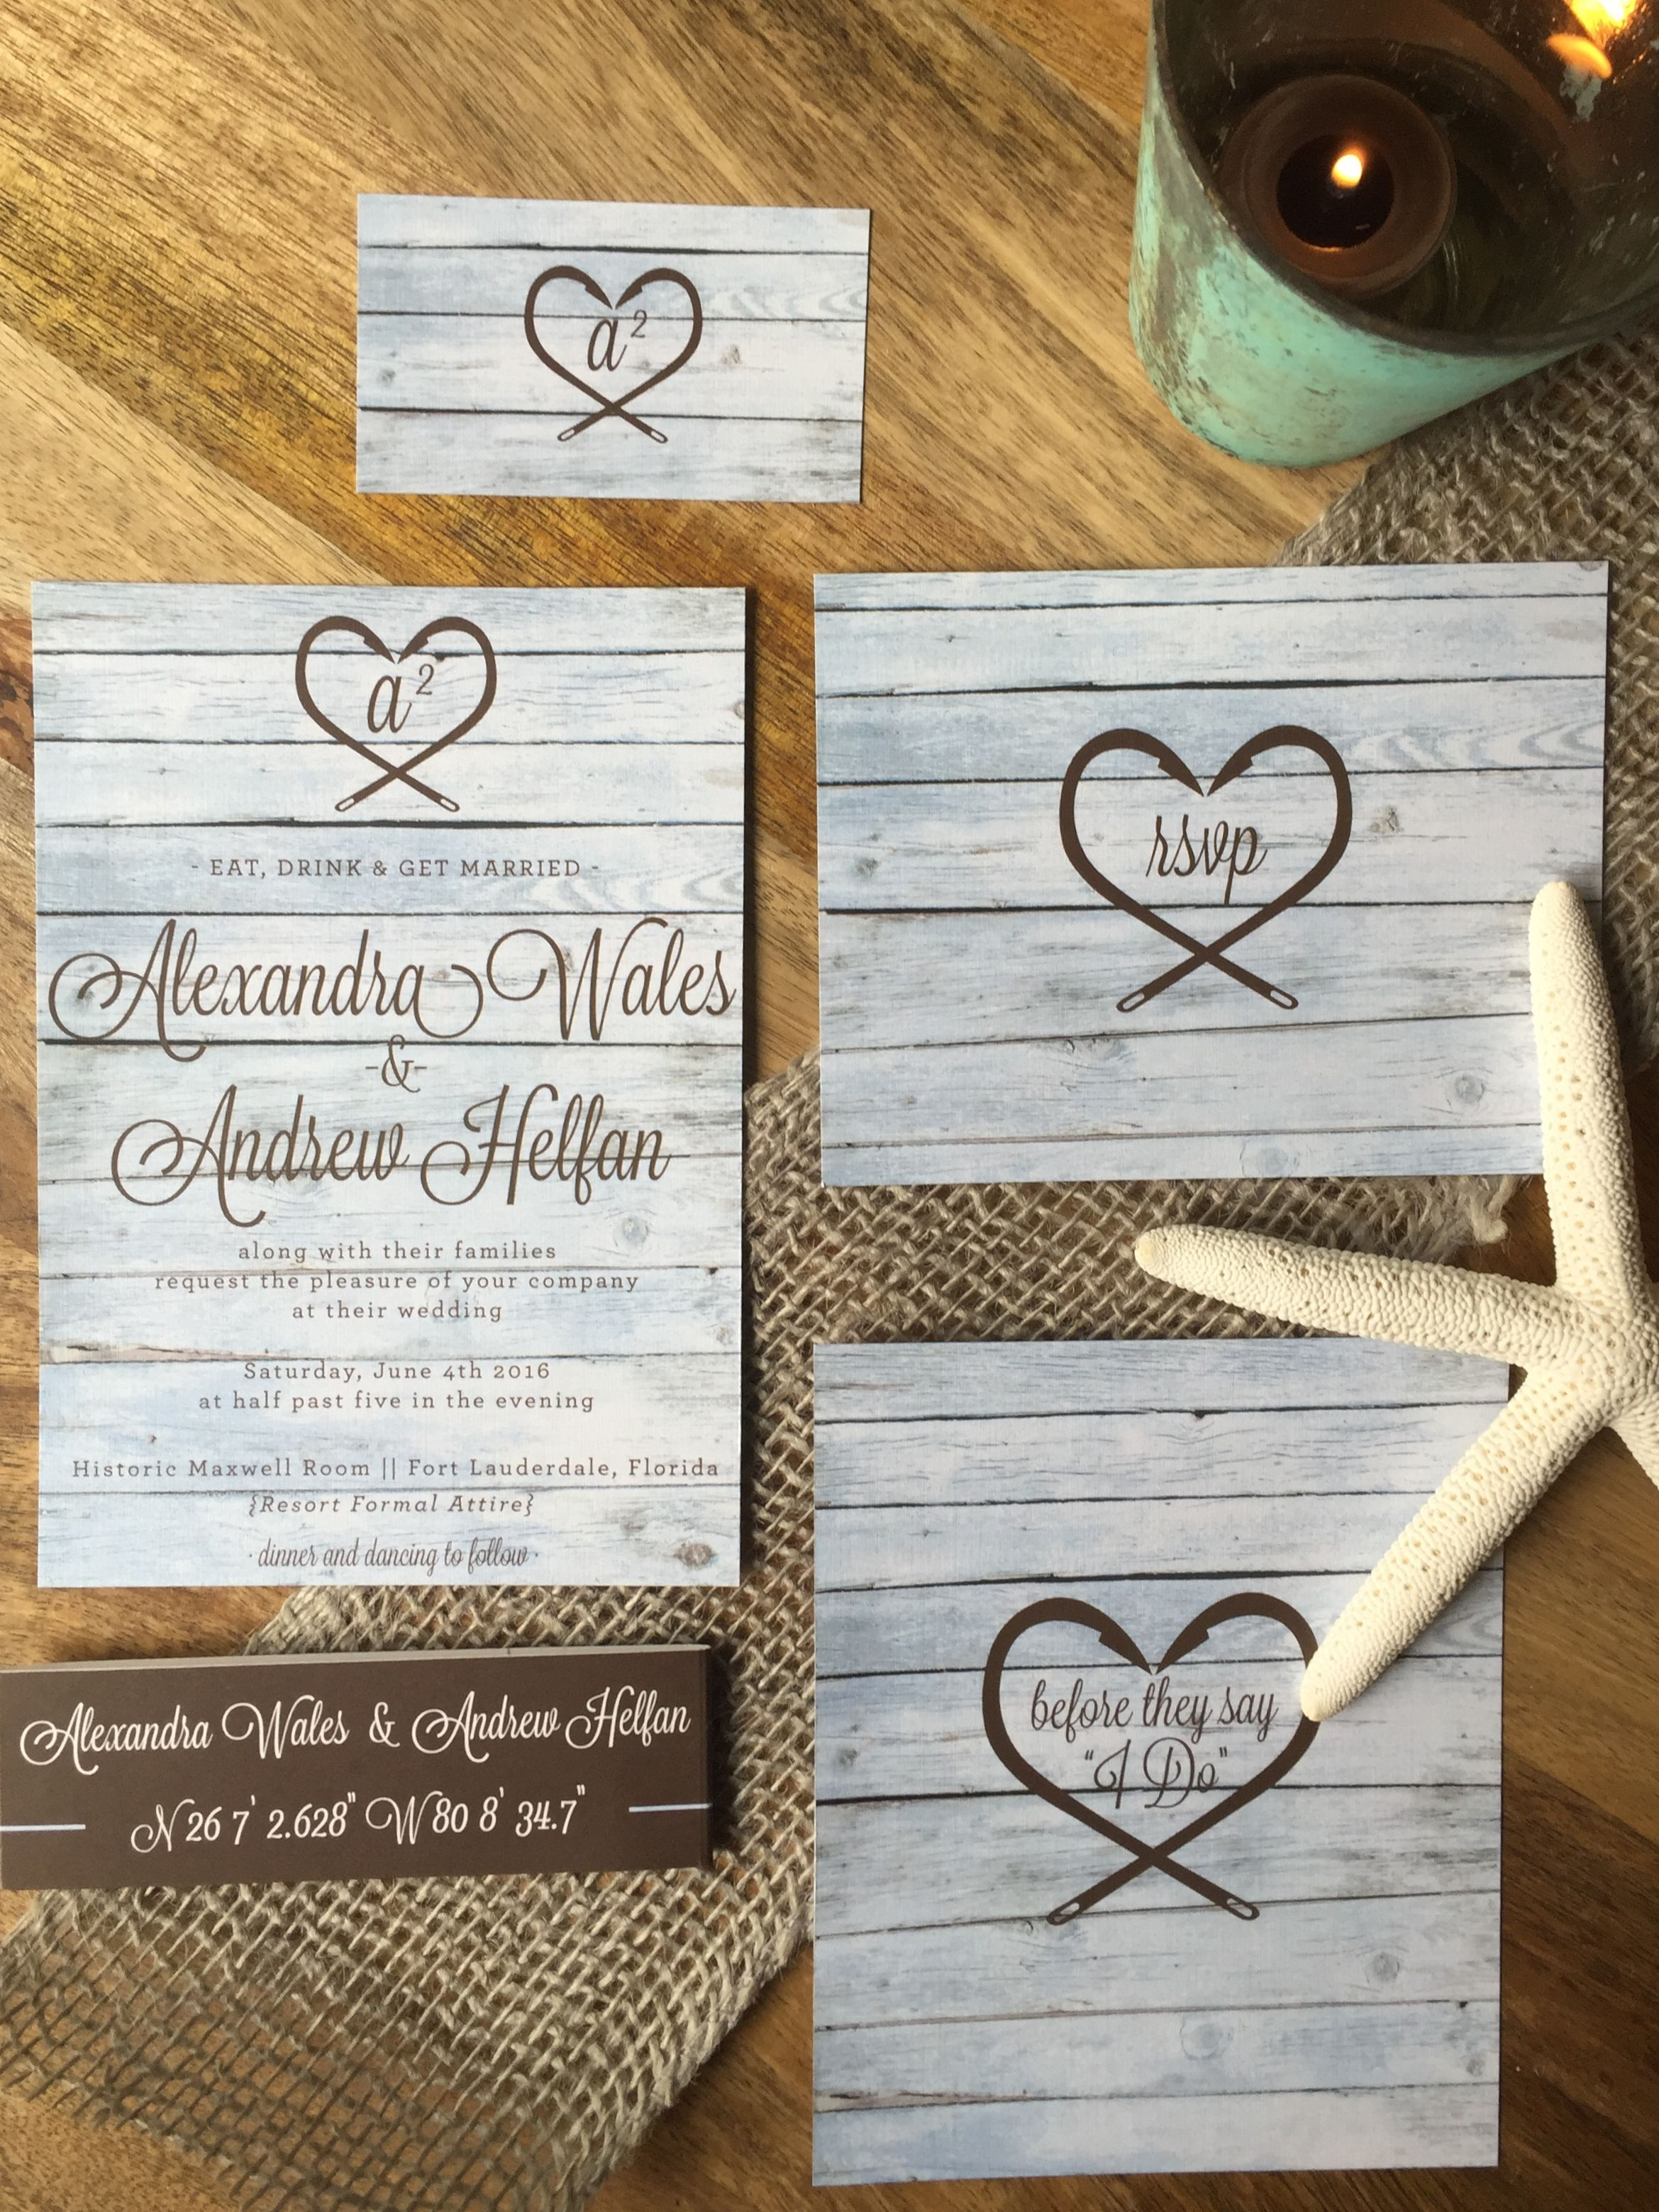 best wedding quotes for invitations%0A Less Formal Wedding Invitation Wording